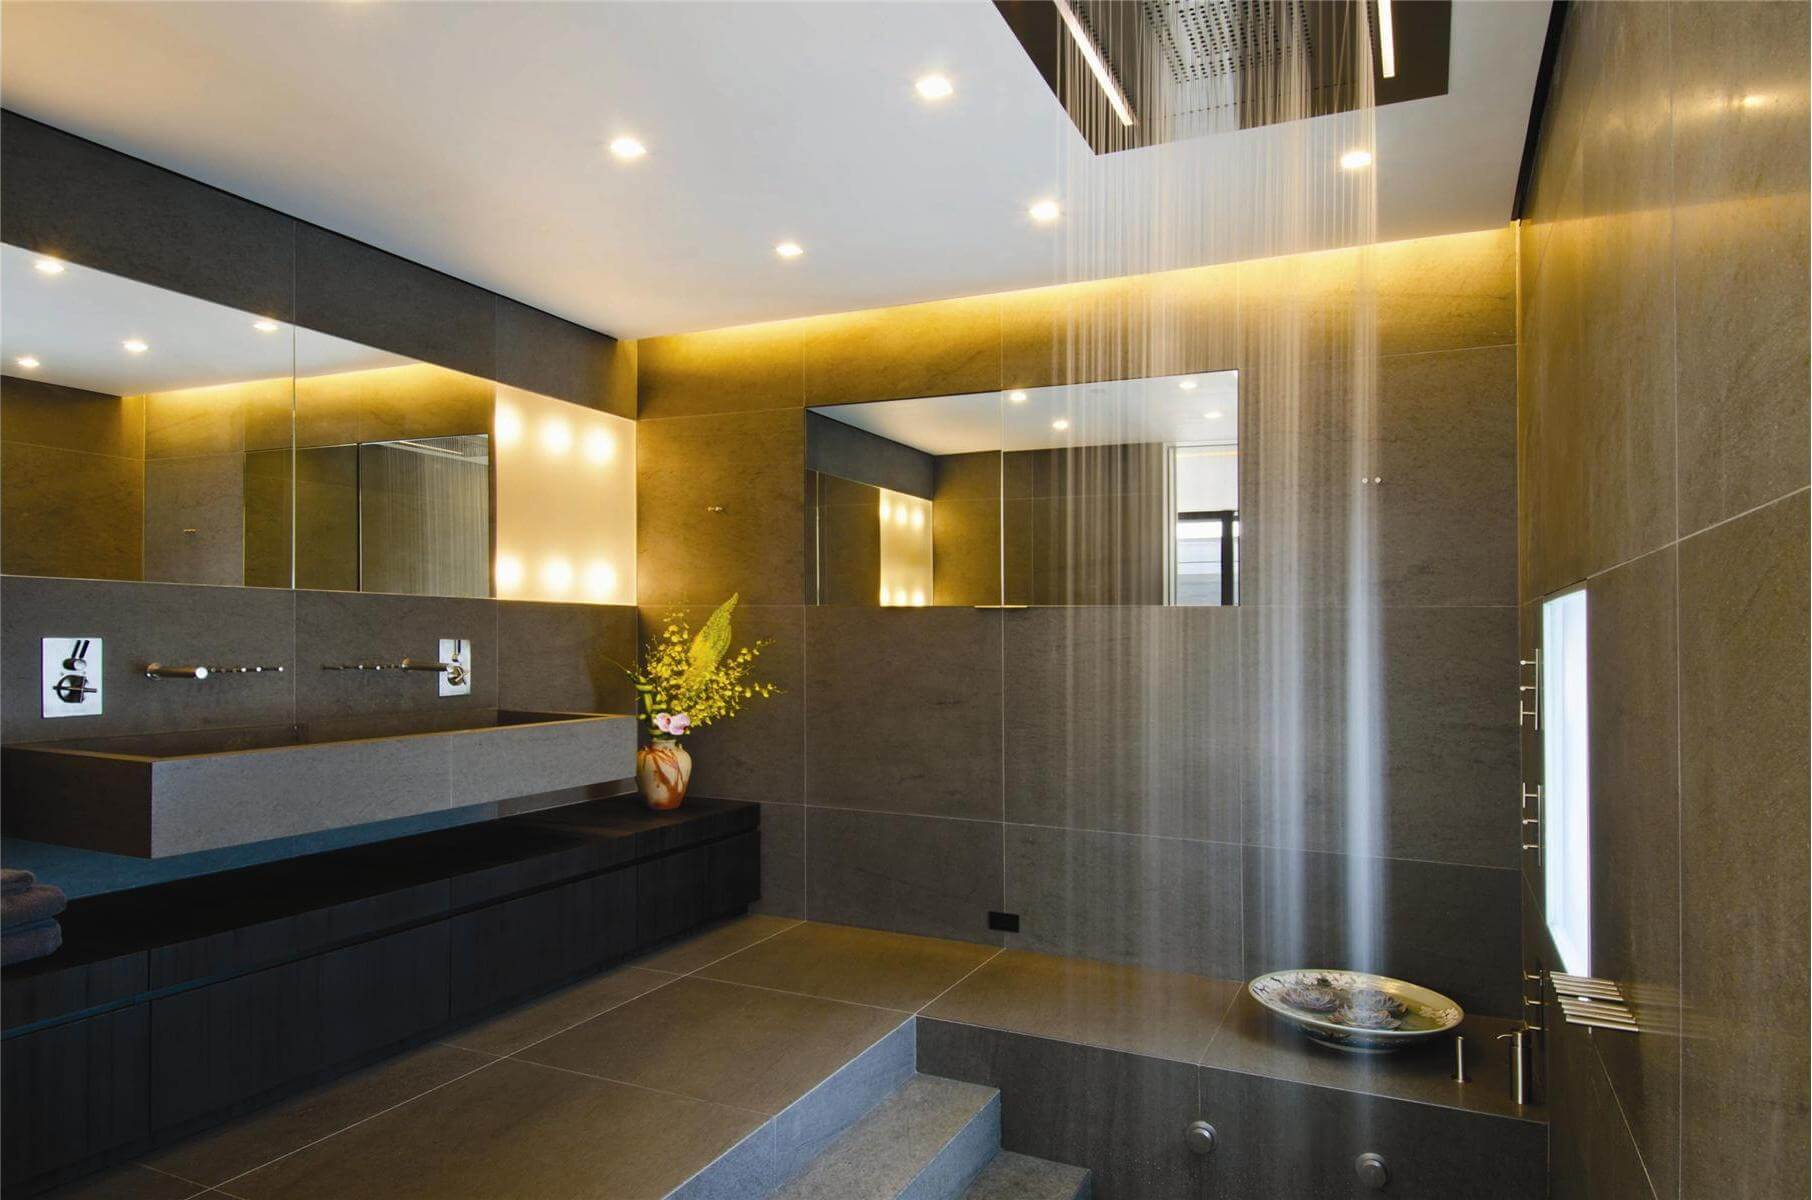 Bathroom Ideas You Can Use 10 practical bathroom design ideas you can use today